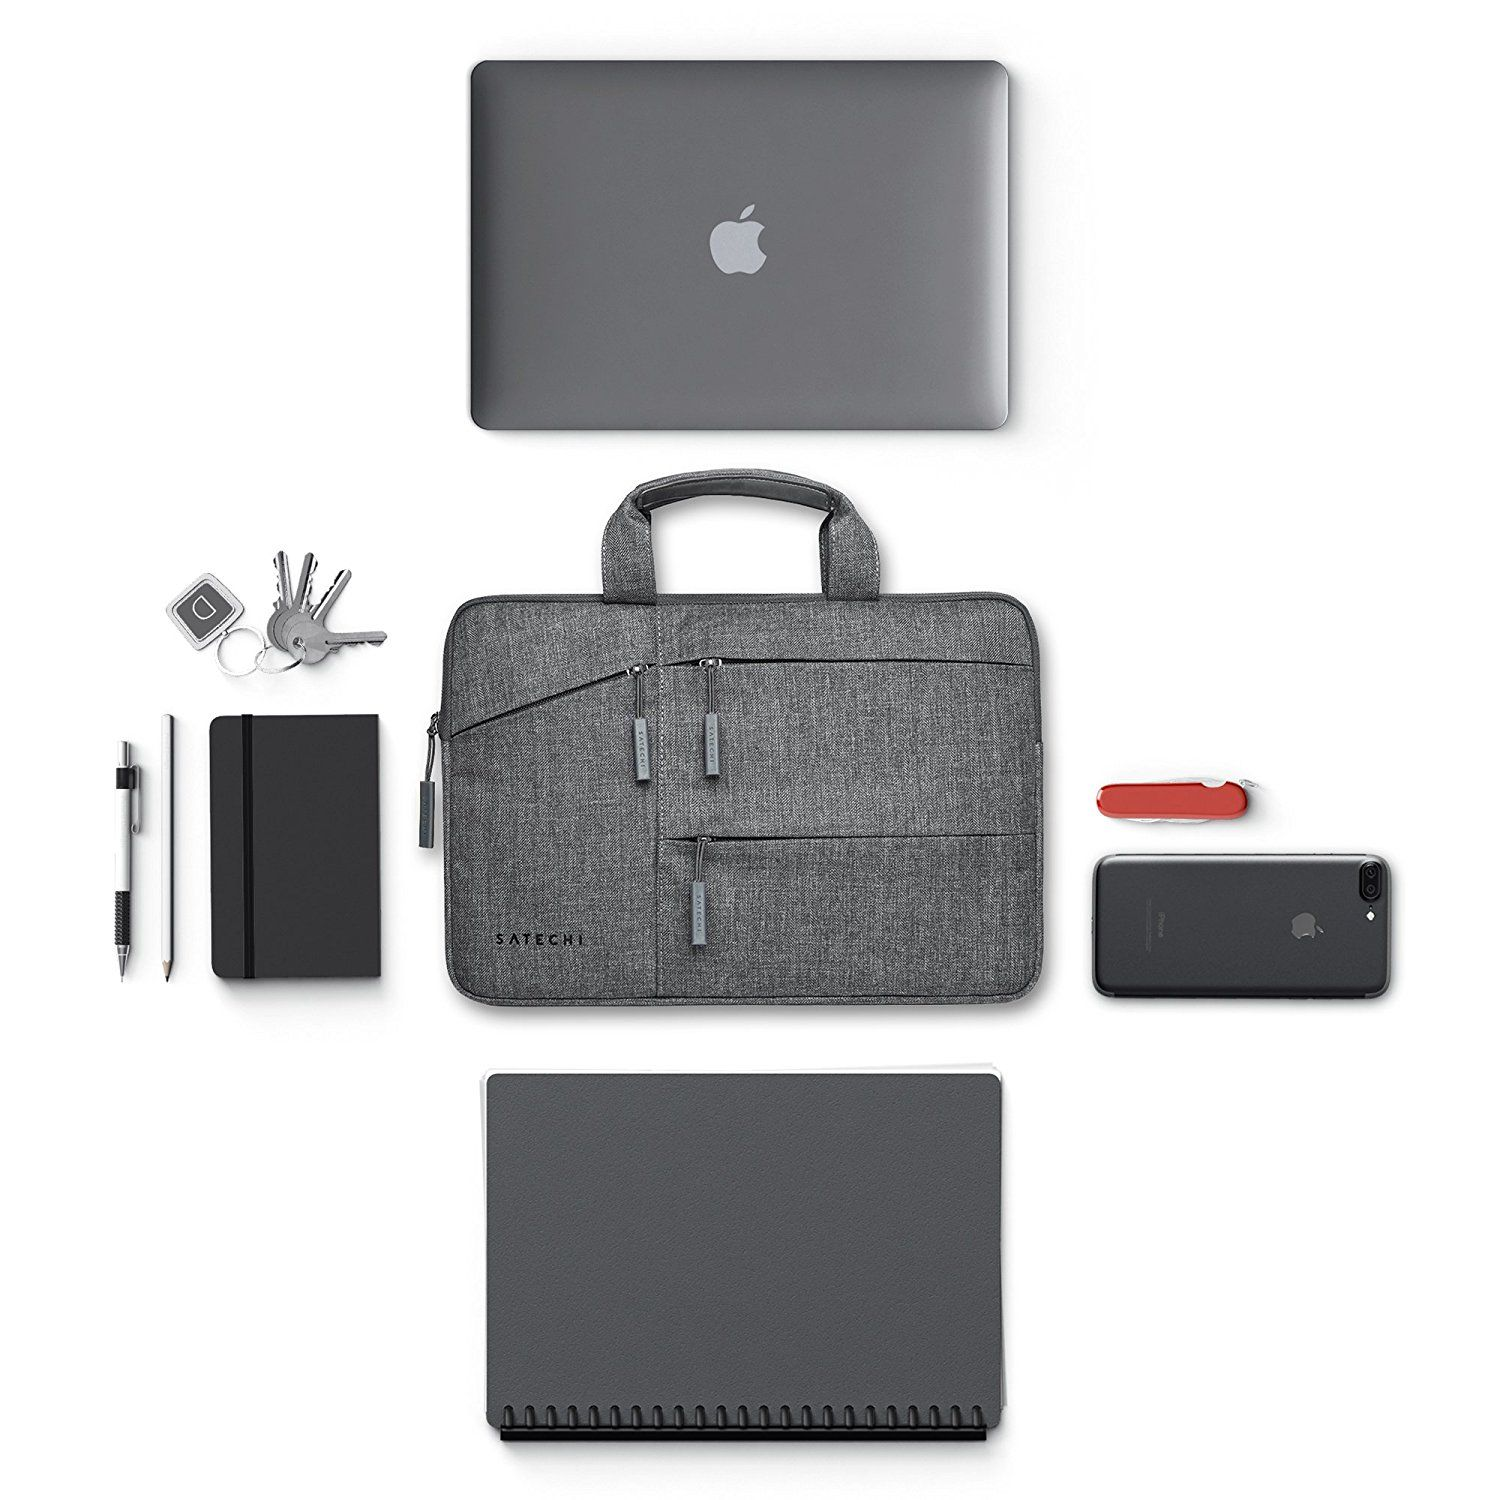 5046b63ff422 Amazon.com: Satechi Water-Resistant Laptop Bag Carrying Case w ...